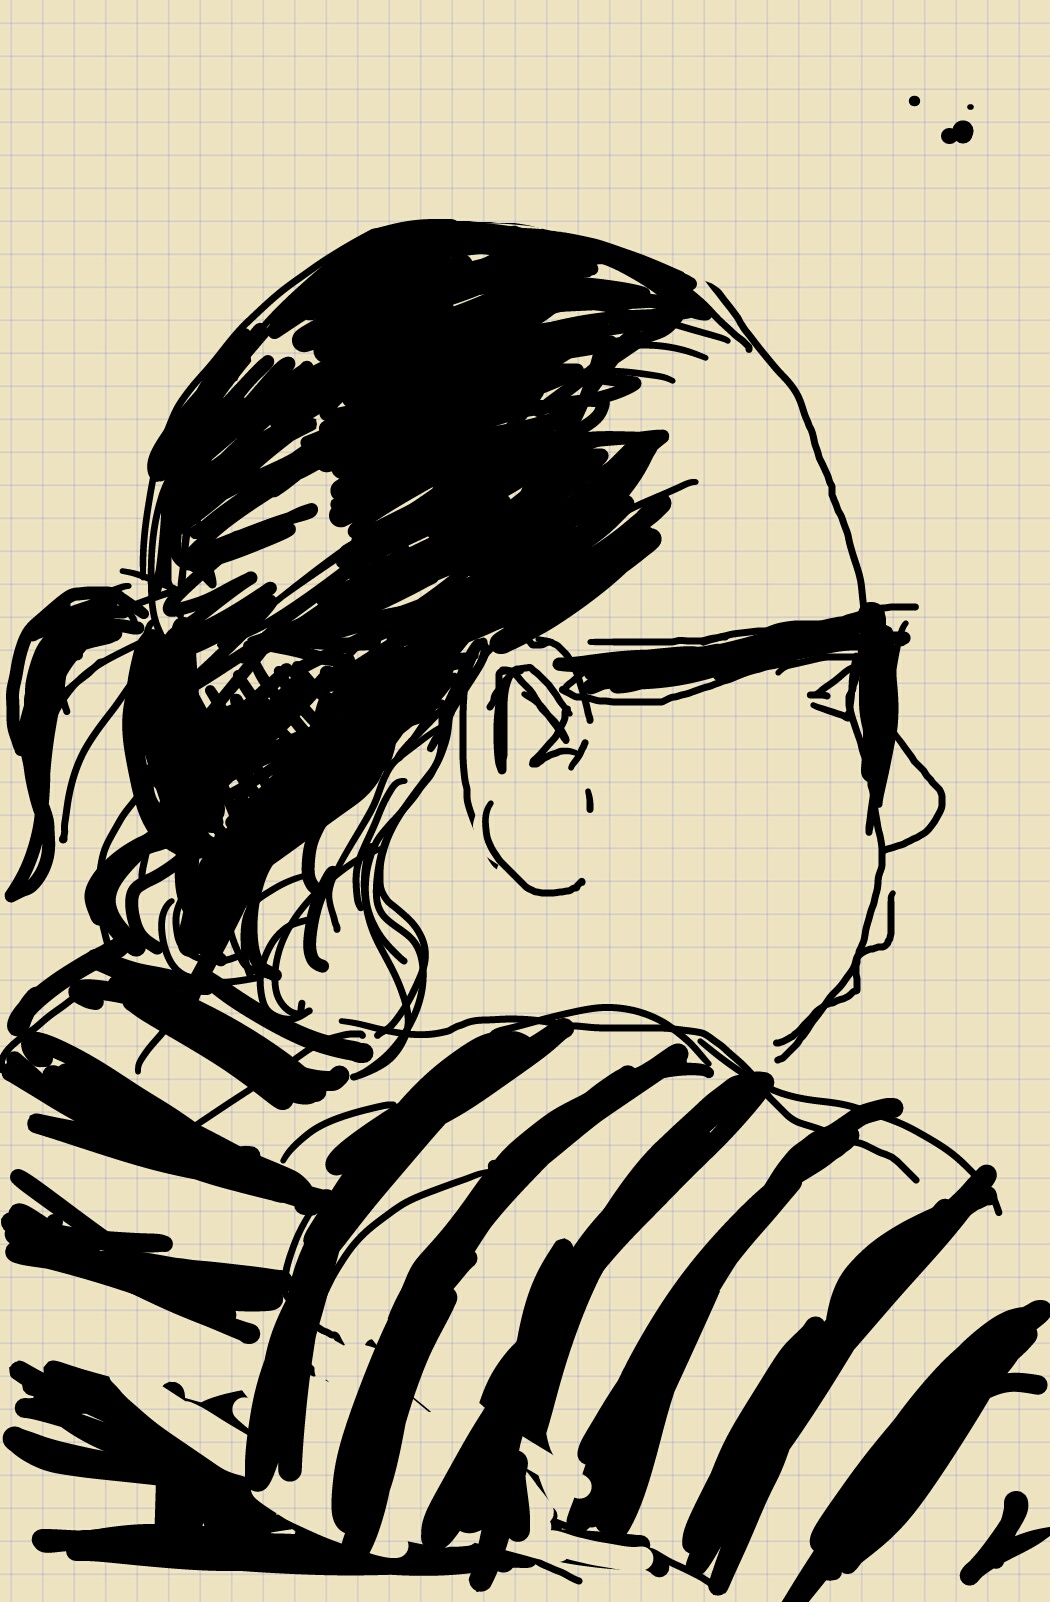 A profile sketch of a woman wearing a striped shirt, with her black hair tied back.